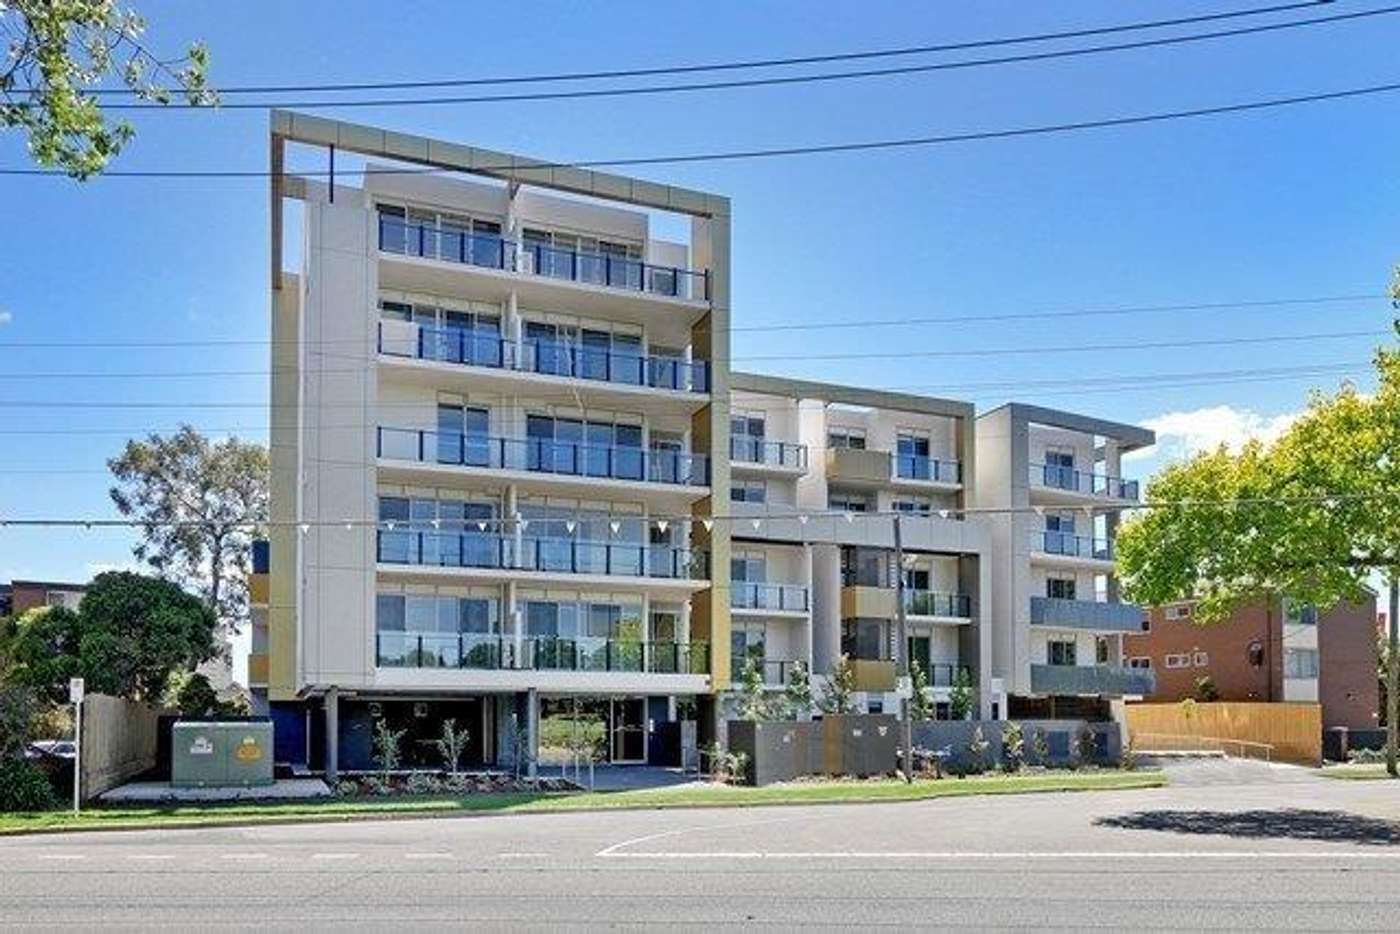 Main view of Homely apartment listing, 104/109 Manningham Street, Parkville VIC 3052